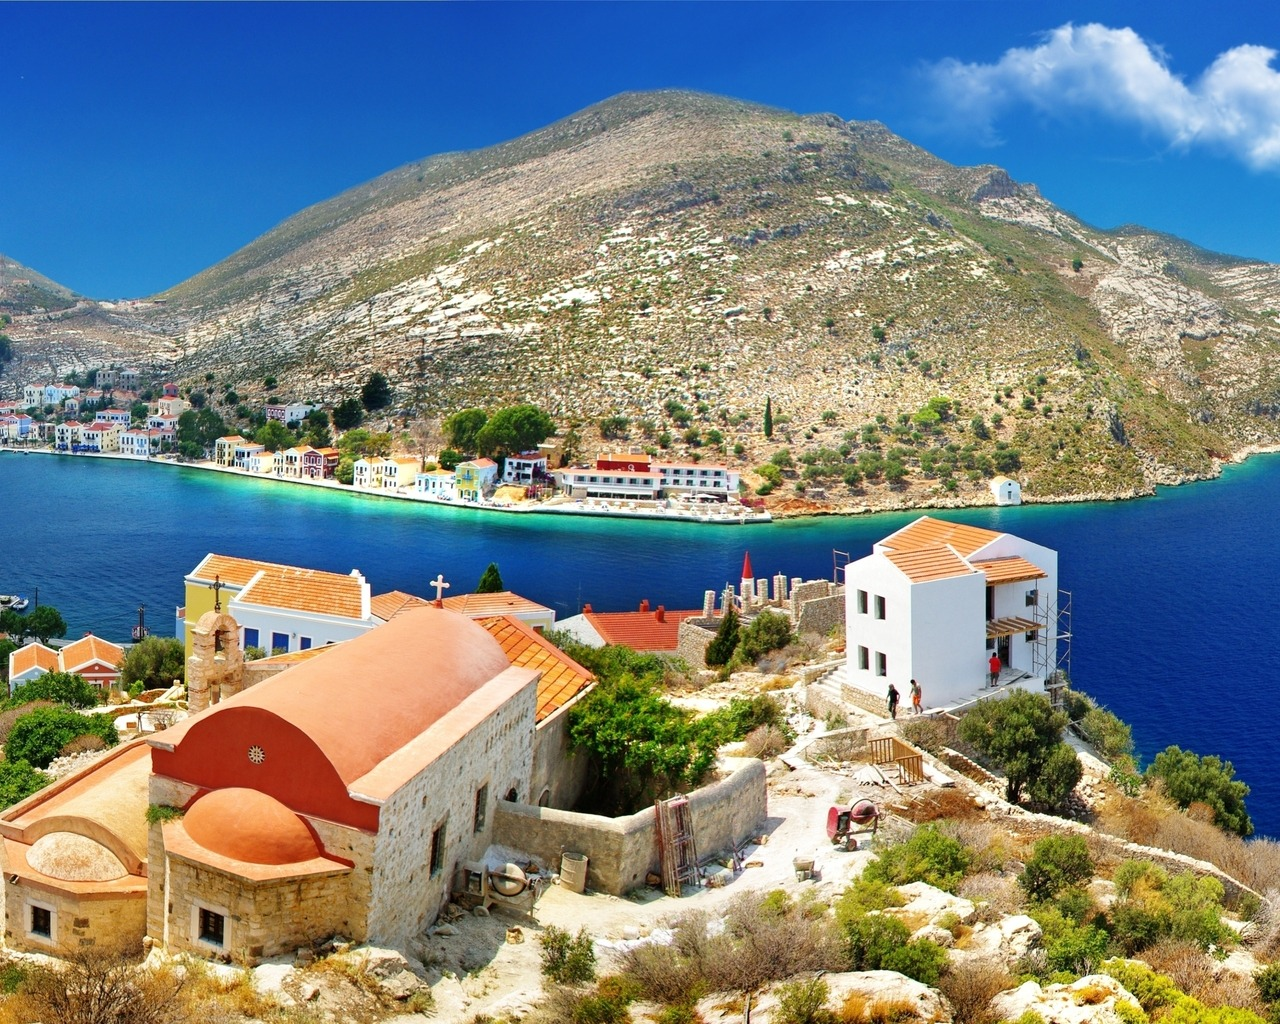 Beautiful Greece 1280x1024 wallpaper